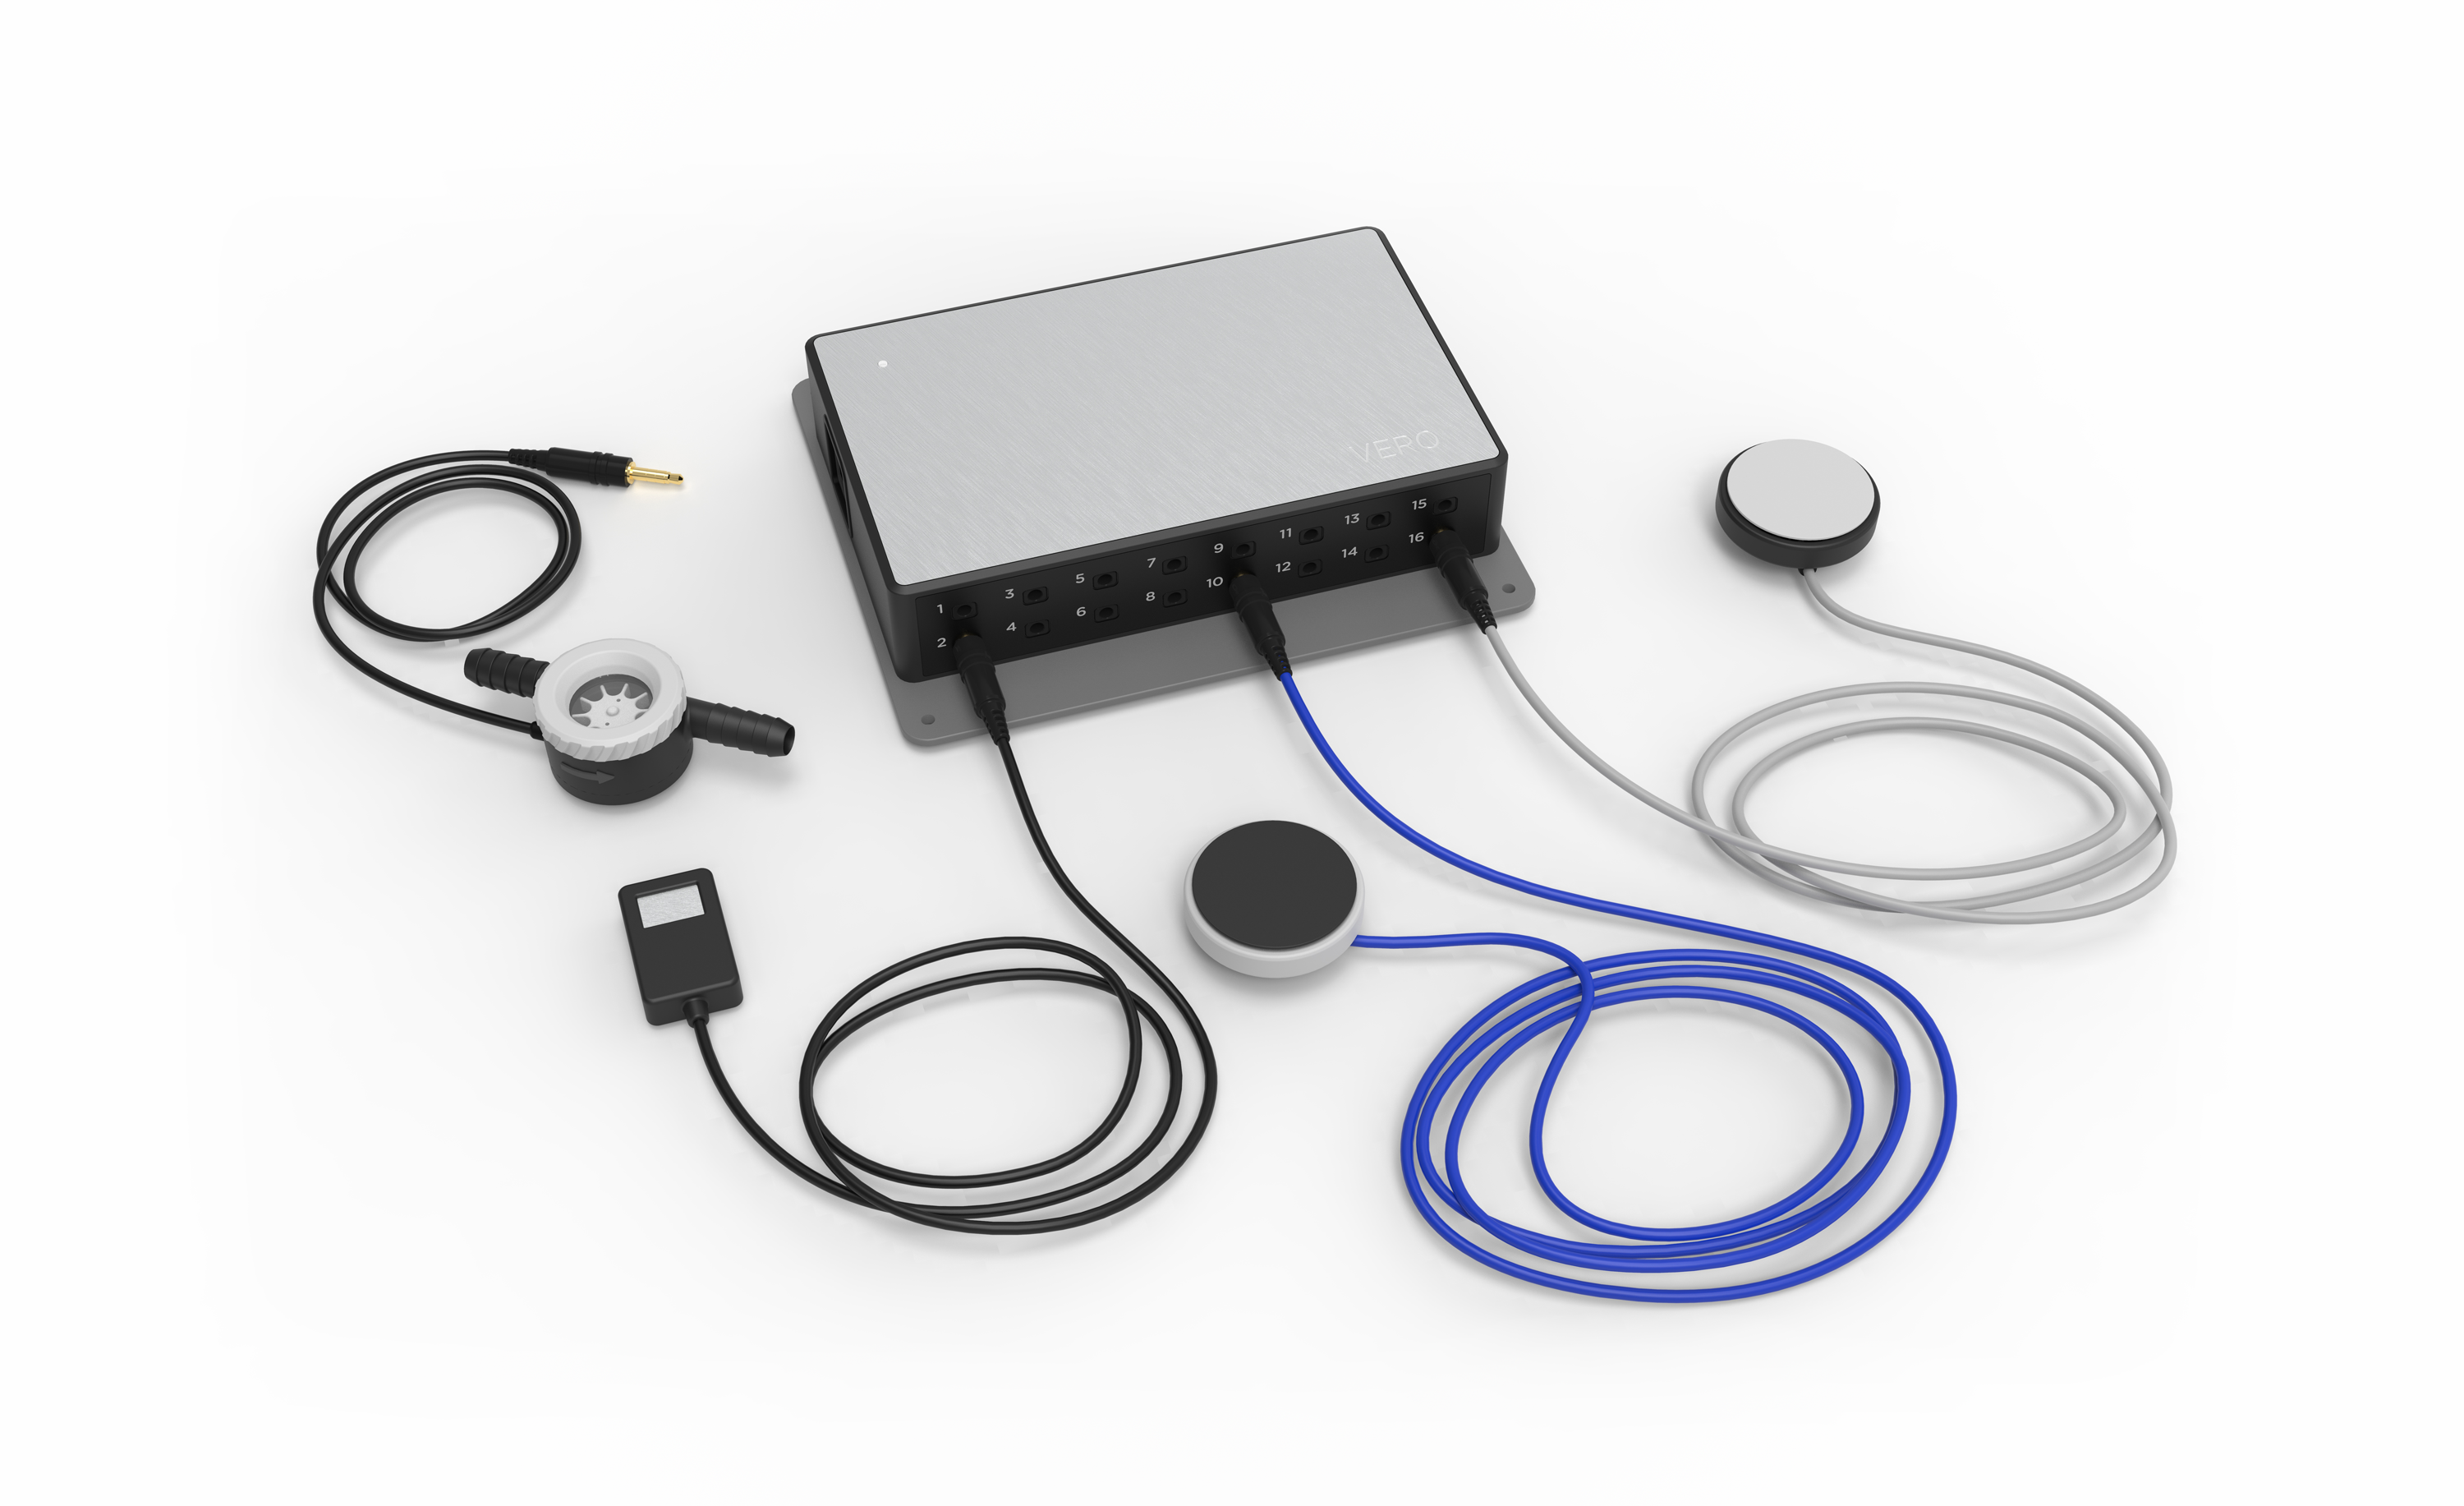 A render of the VERO Beverage Management Hardware and its various sensors.